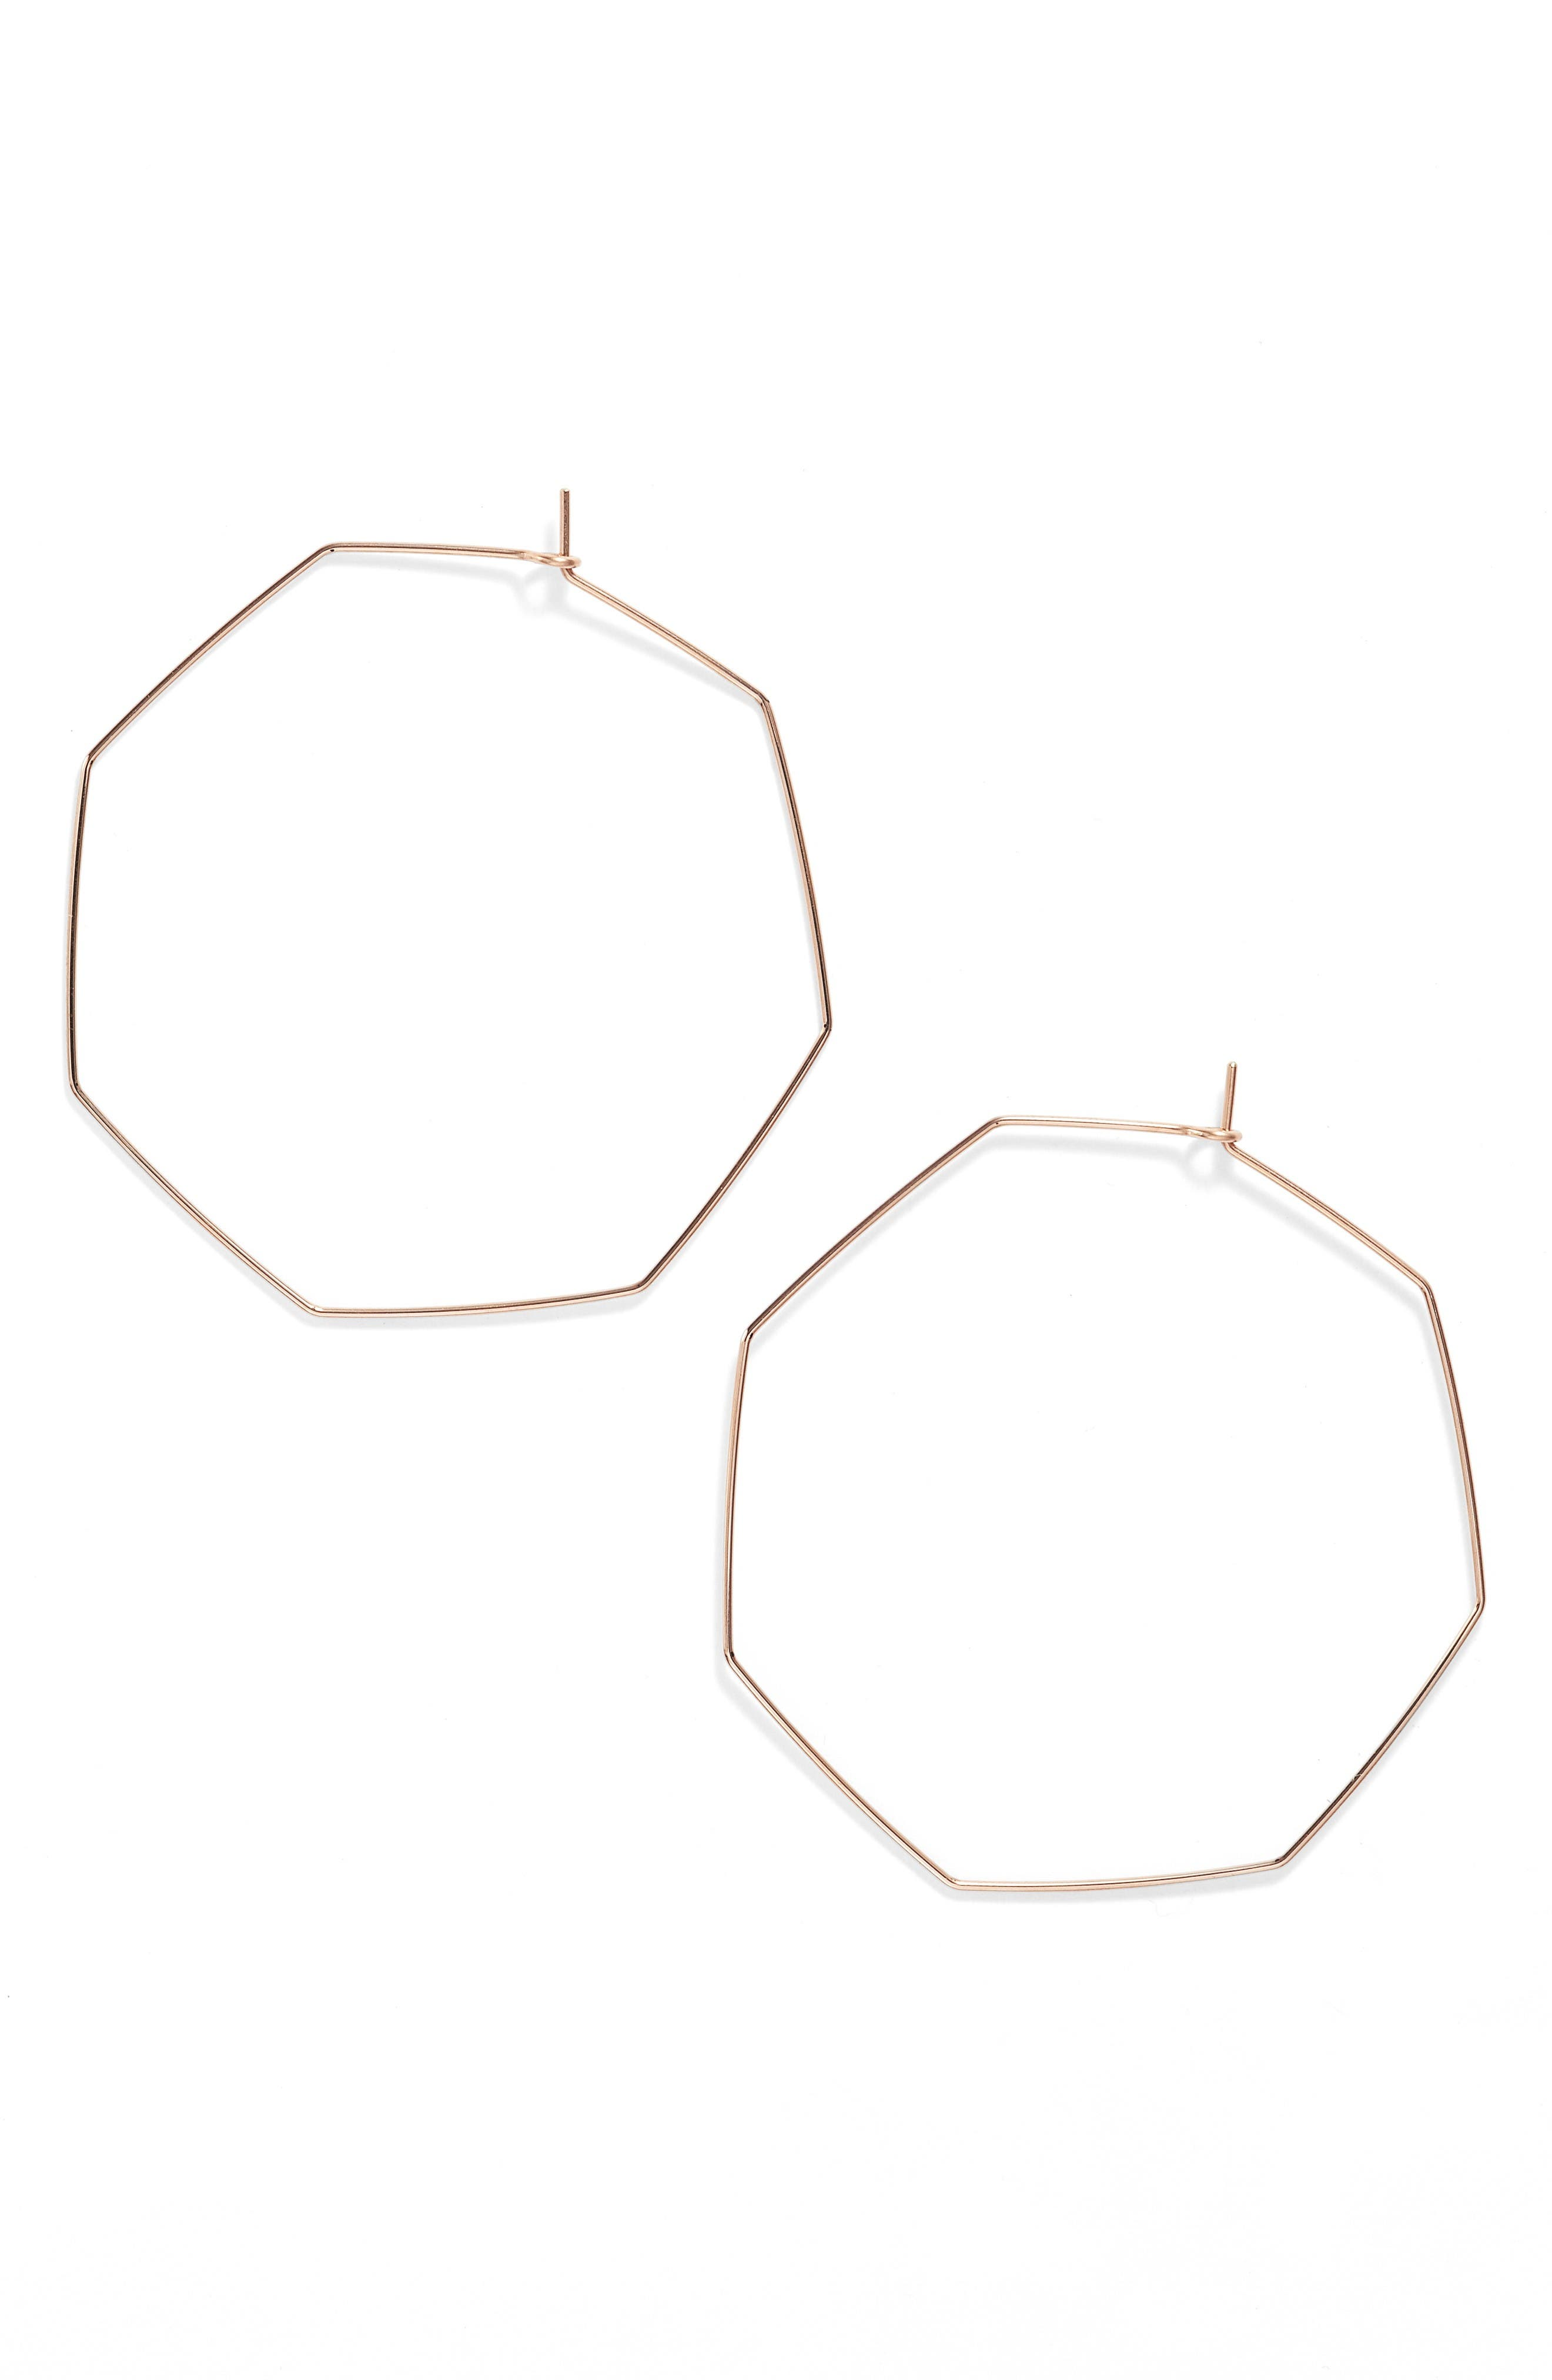 Nashelle Octagon Hoop Earrings